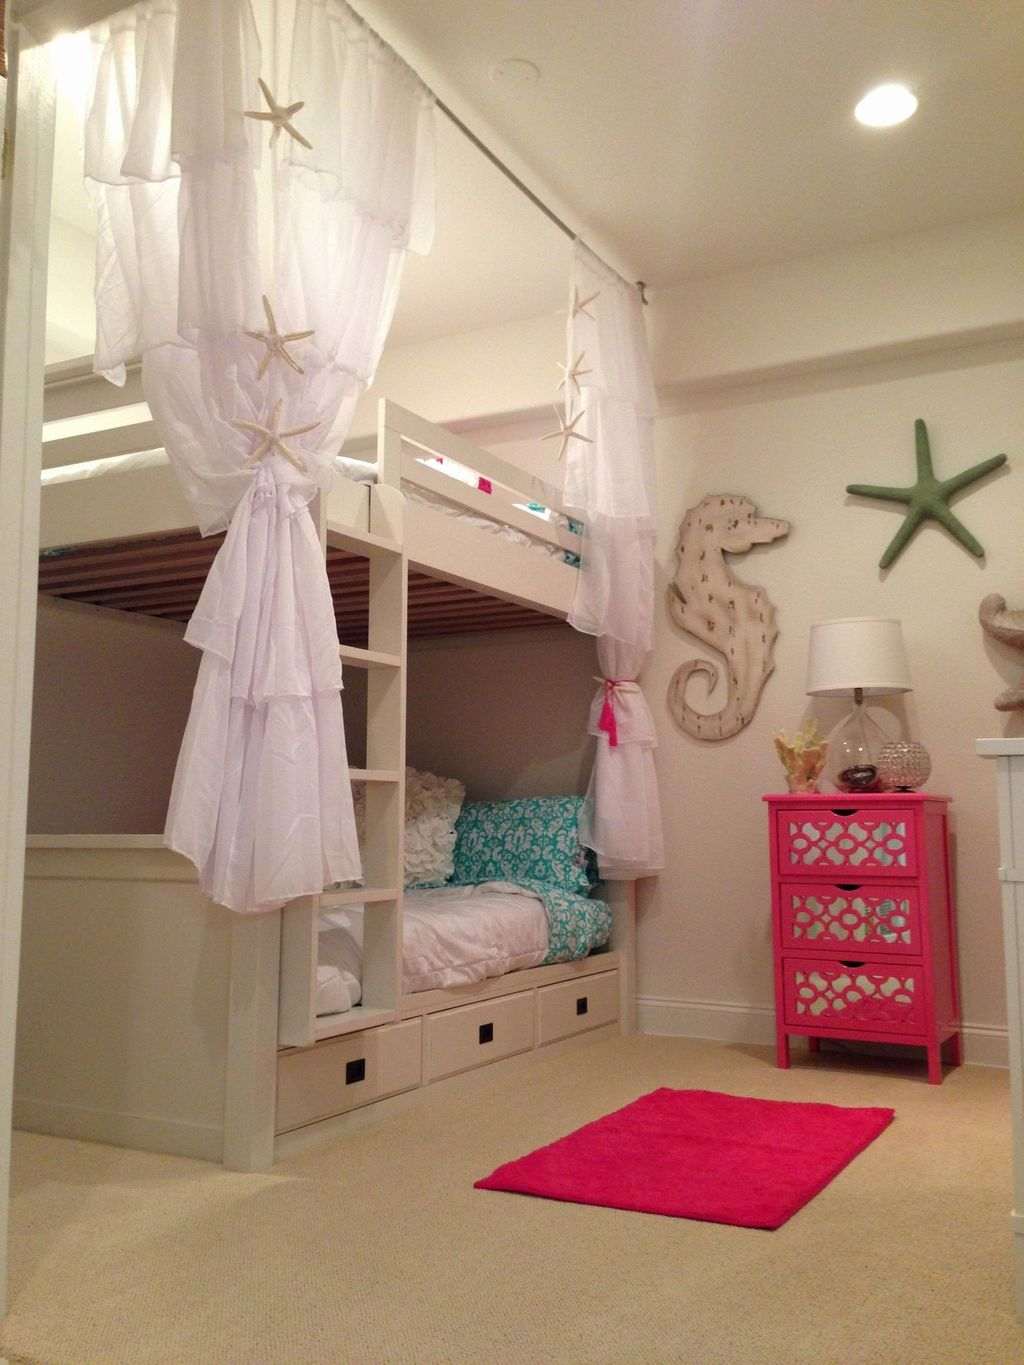 Beautiful Mermaid Theme Bedroom Decor Ideas For Girls 24